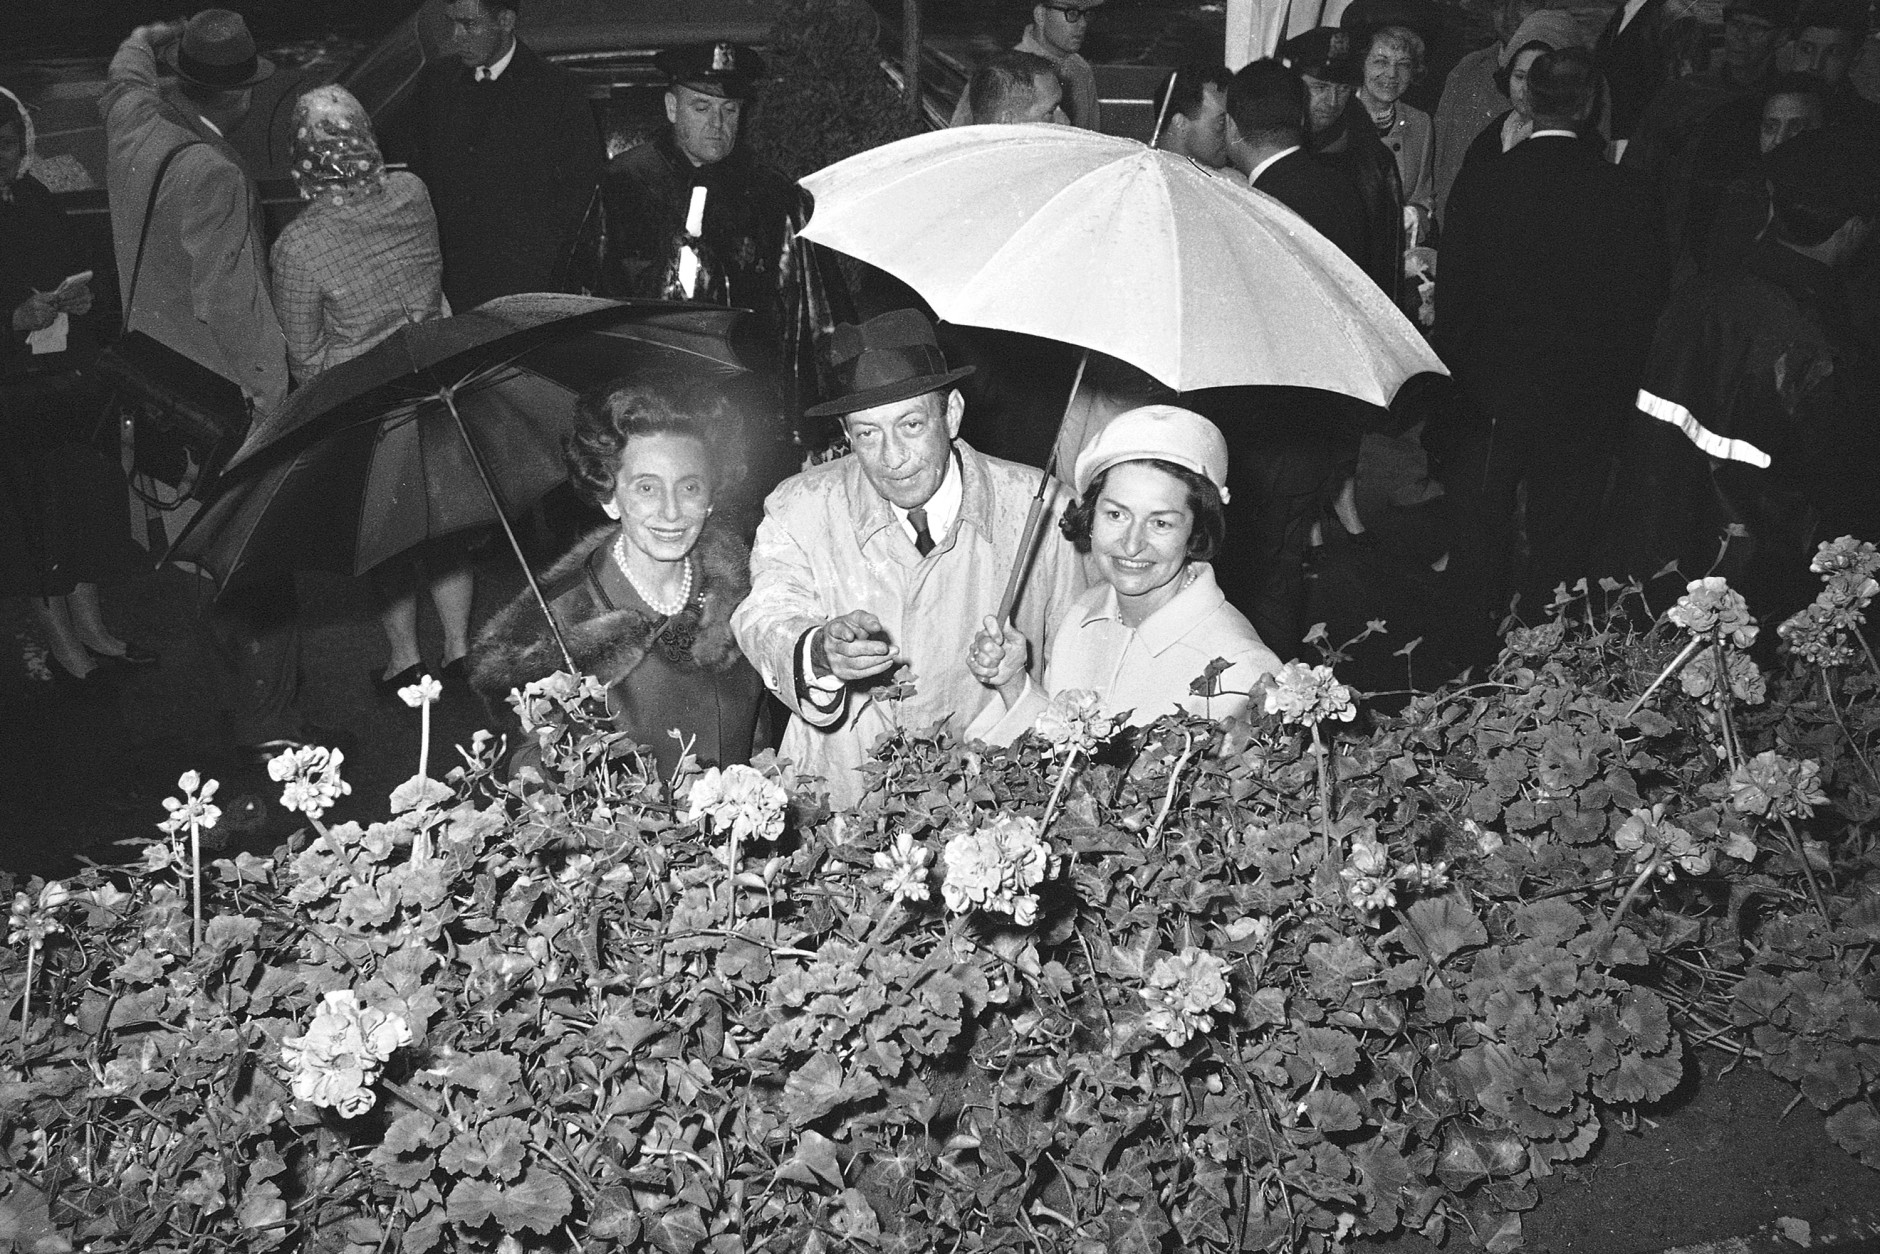 """Lady Bird Johnson, wife of Pres. Johnson, uses an umbrella to keep dry as she and New York's Mayor Robert F. Wagner, center, with Anna Rosenberg Hoffman, left, co-chairman of the city's """"Salute to Season"""" program, inspect a flower display at the Plaza Hotel in New York, May 7, 1965.  The nation's first lady called upon New Yorkers to use green thumbs in beautifying the city's streets.  (AP Photo/John Lent)"""